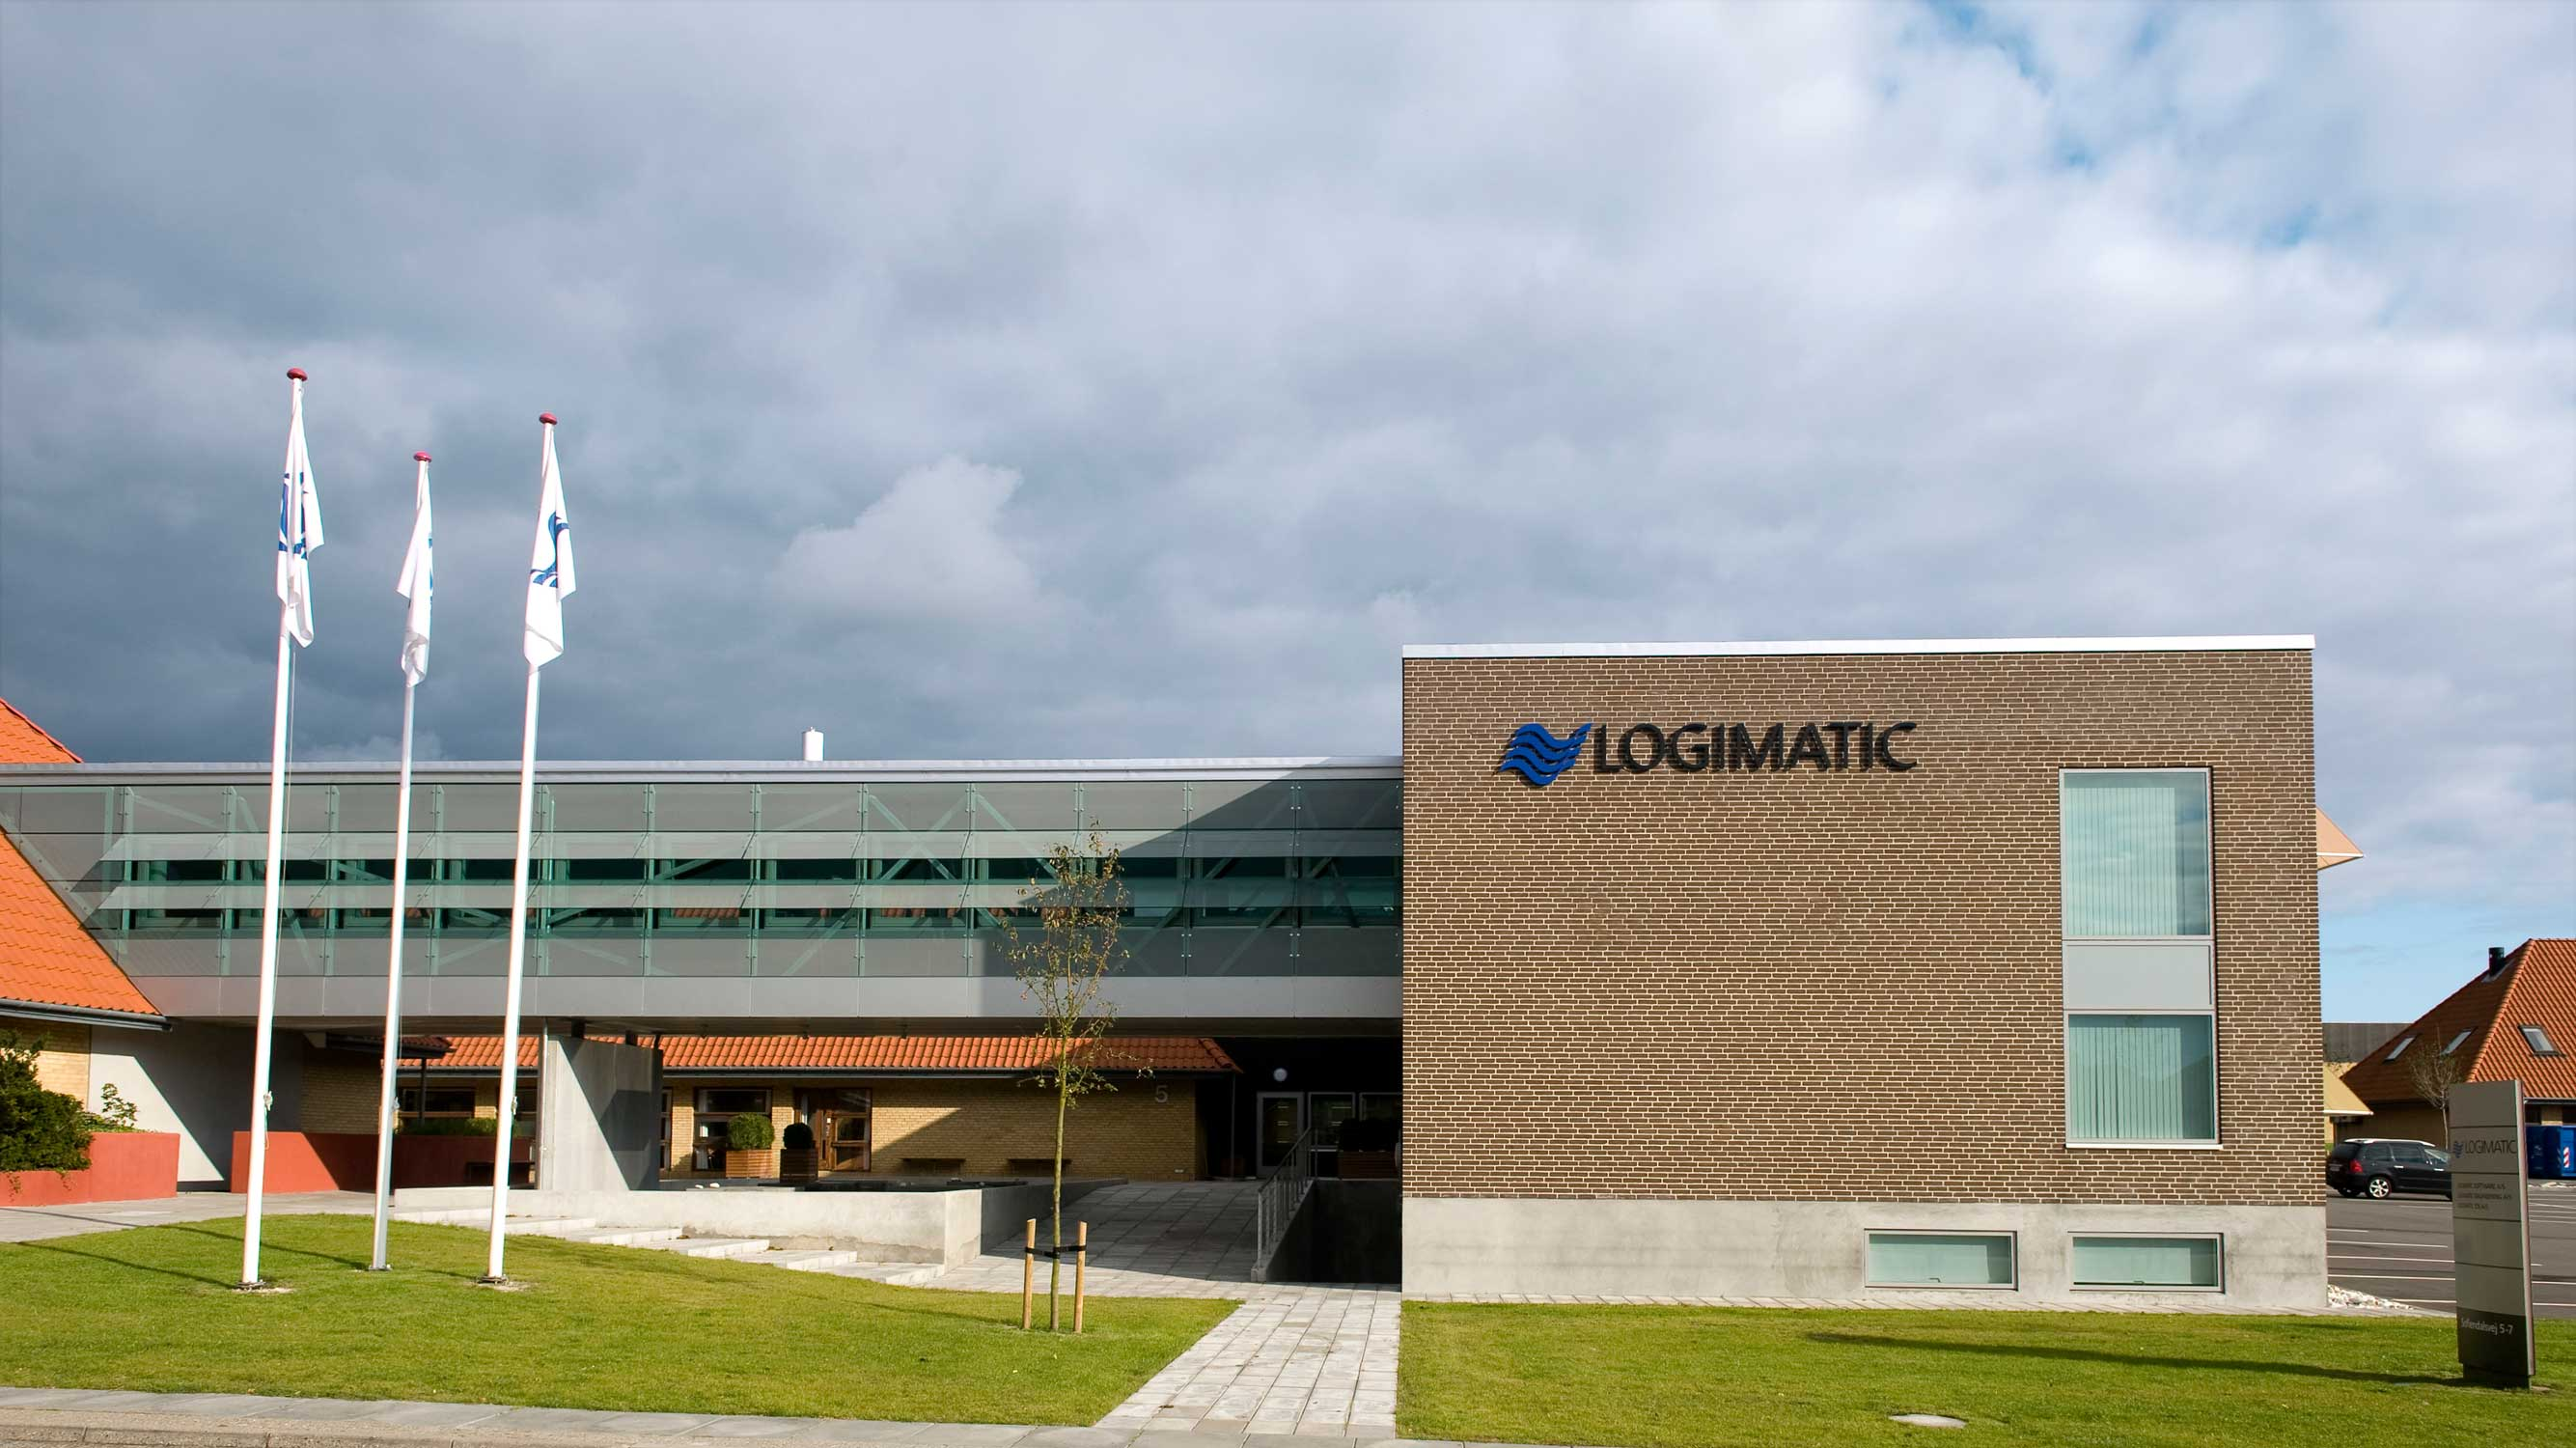 http://ta-as.dk/wp-content/uploads/2012/11/Logimatic-Aalborg.jpg